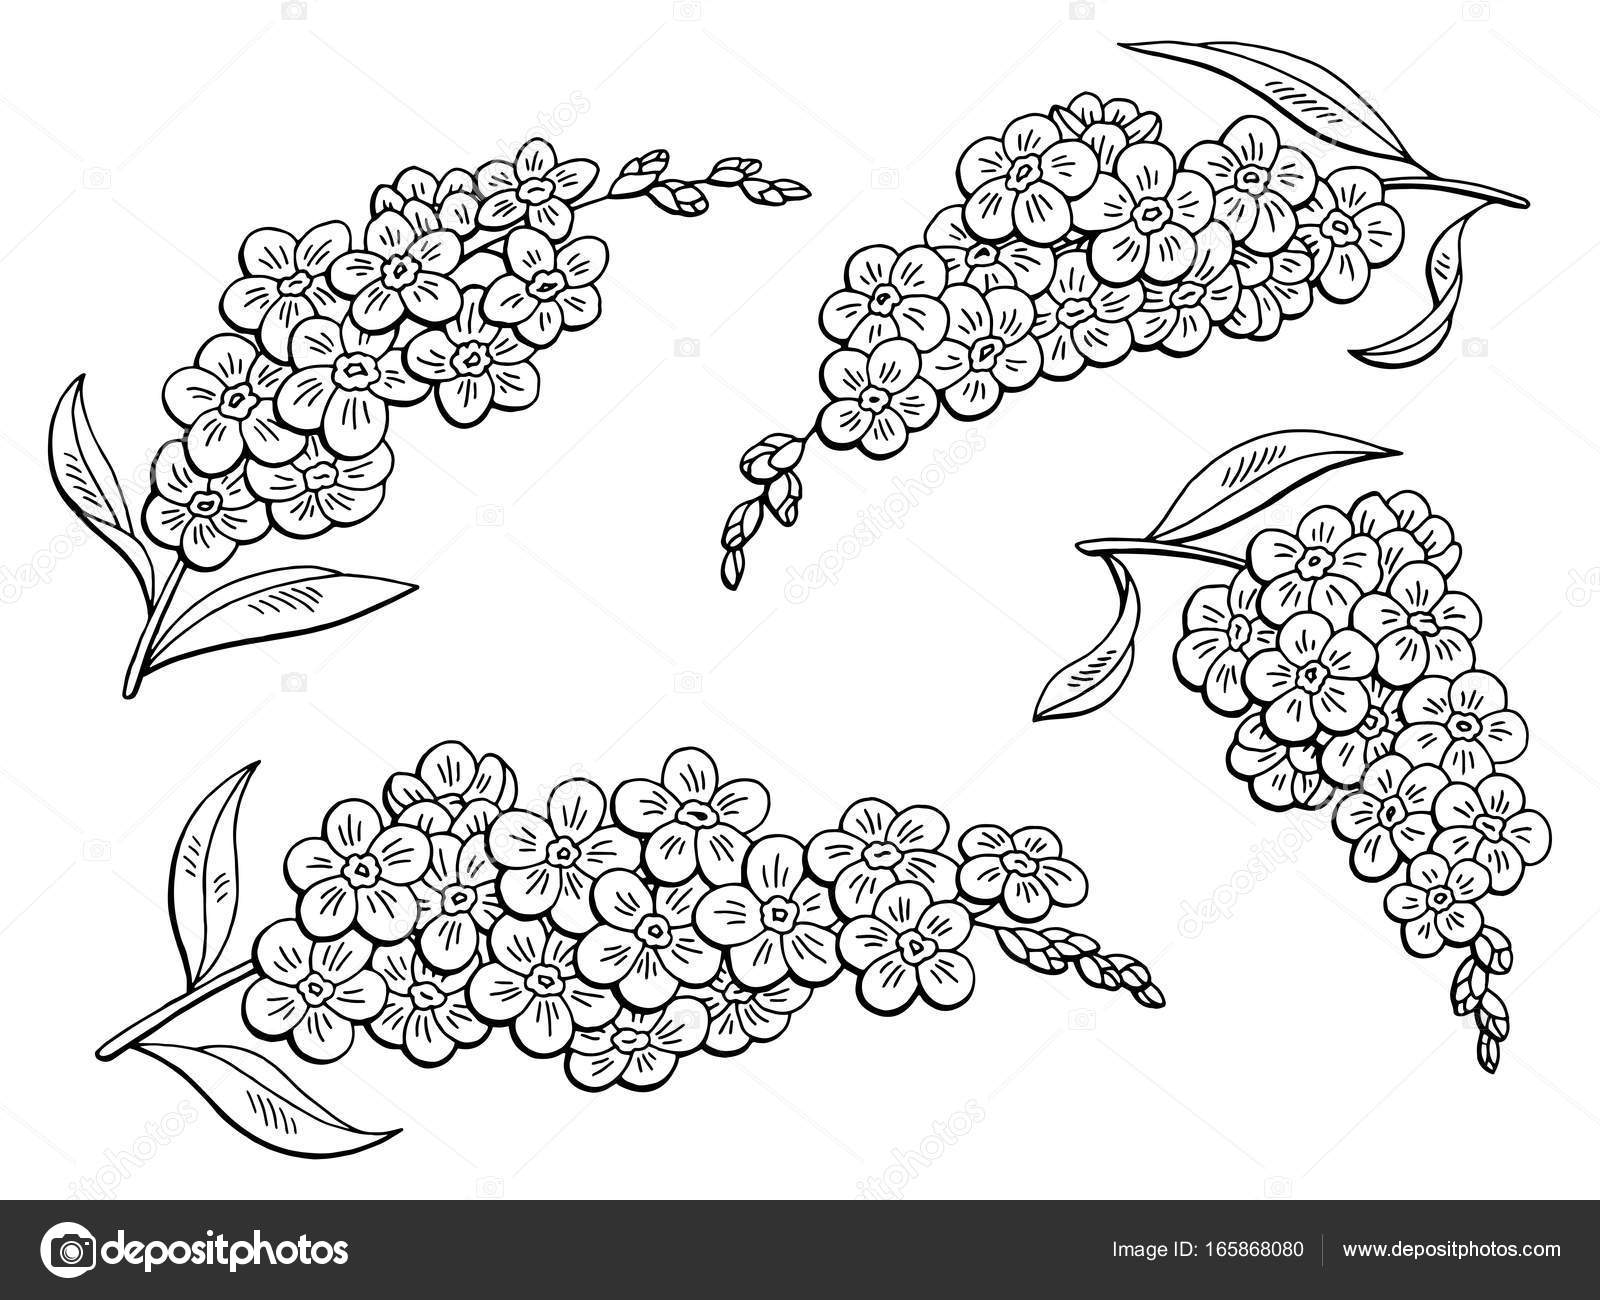 1600x1300 Forget Me Not Flower Graphic Black White Isolated Sketch